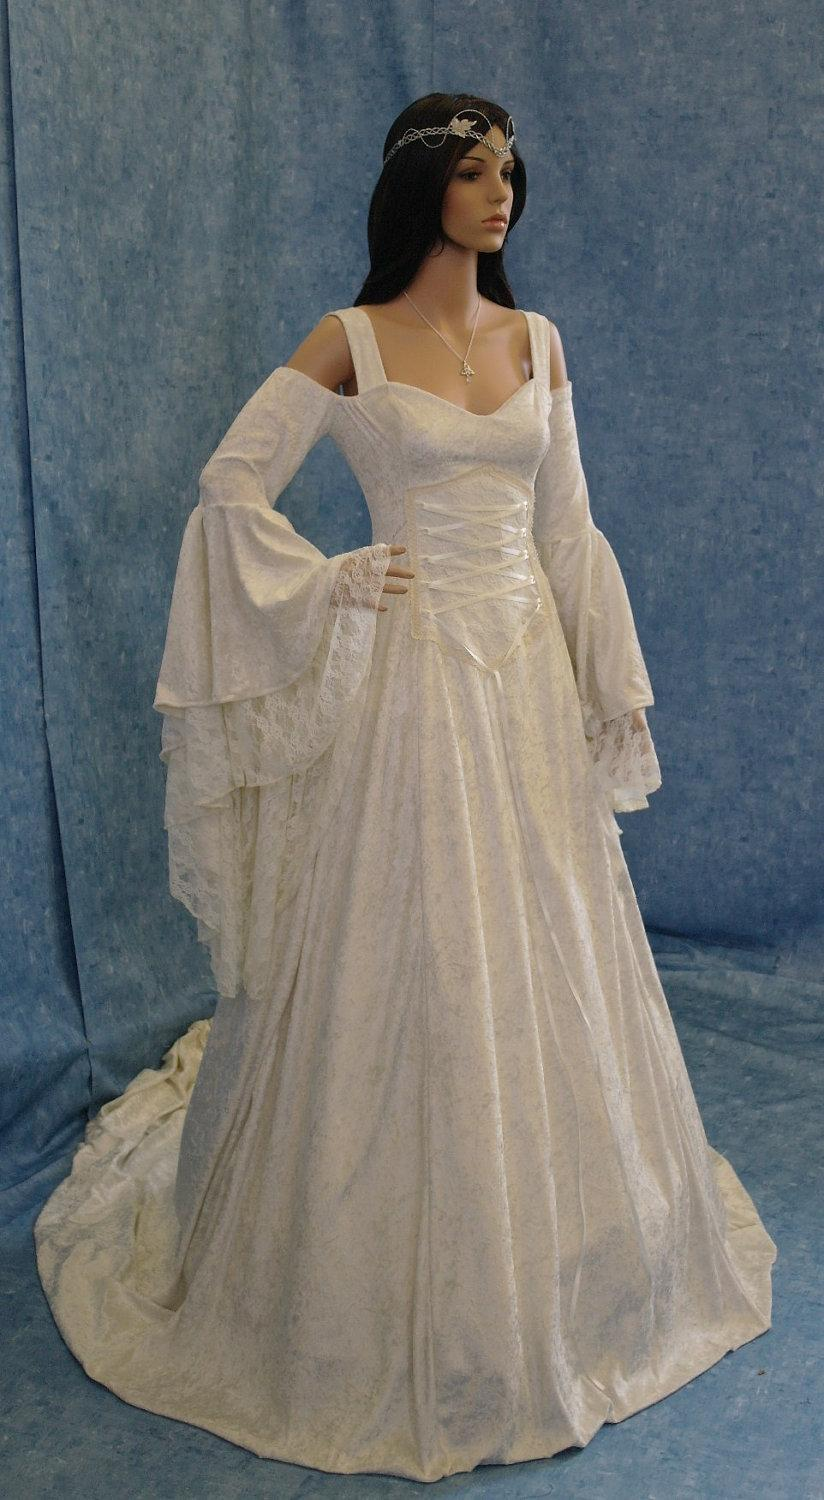 Renaissance Wedding Dress.Ivory Wedding Dress Beach Wedding Dress Renaissance Dress